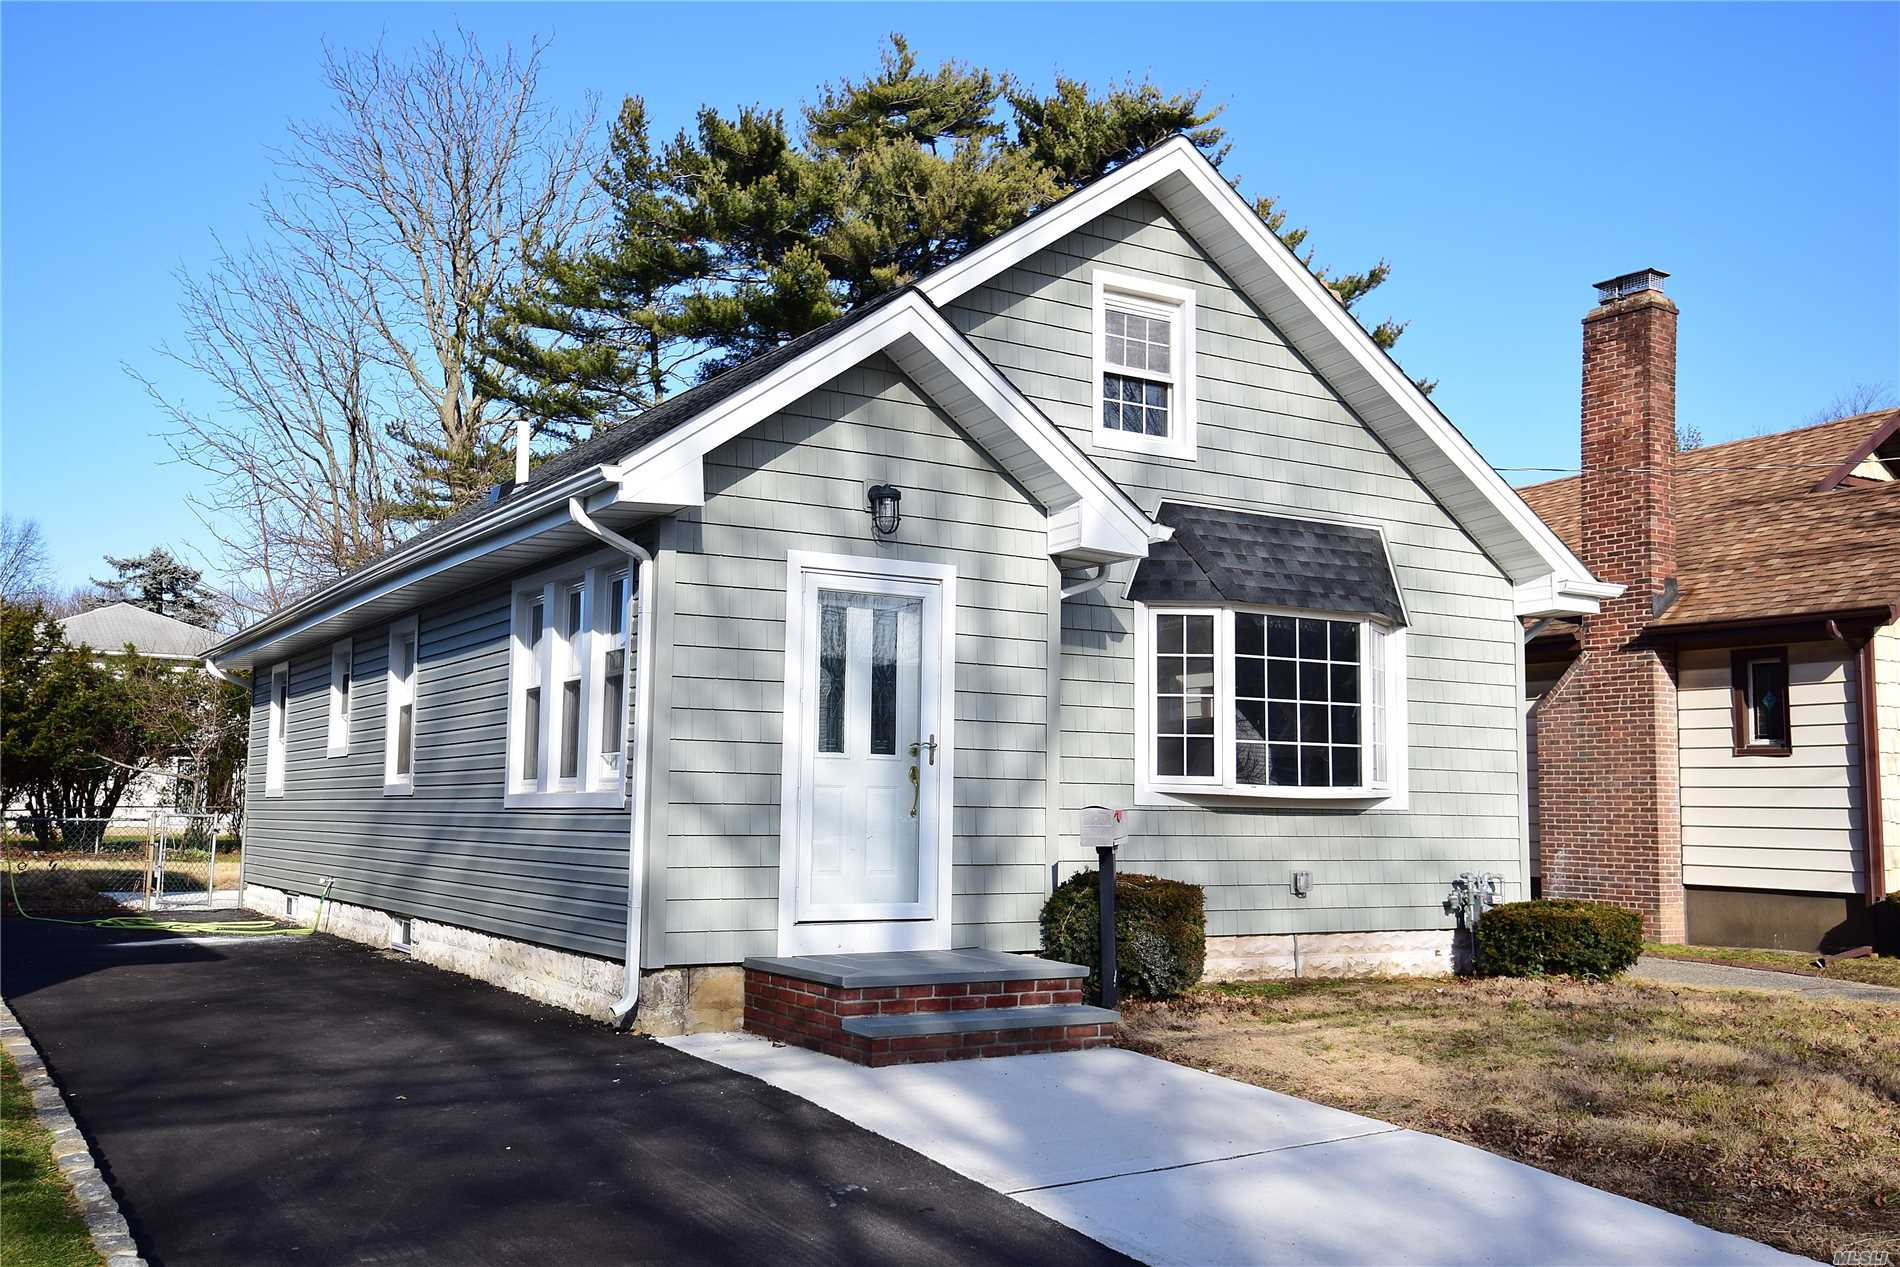 Charming 2 Bedroom Cape With Large Walk Up Attic. Completely Renovated, Hardwood Floors Throughout, New Eik With Granite Countertop And Stainless Steel Appliances W/ Breakfast Nook, Brand New Bath. Addt'l Updates Include, Plumbing, Electric, Roof, Siding And Windows